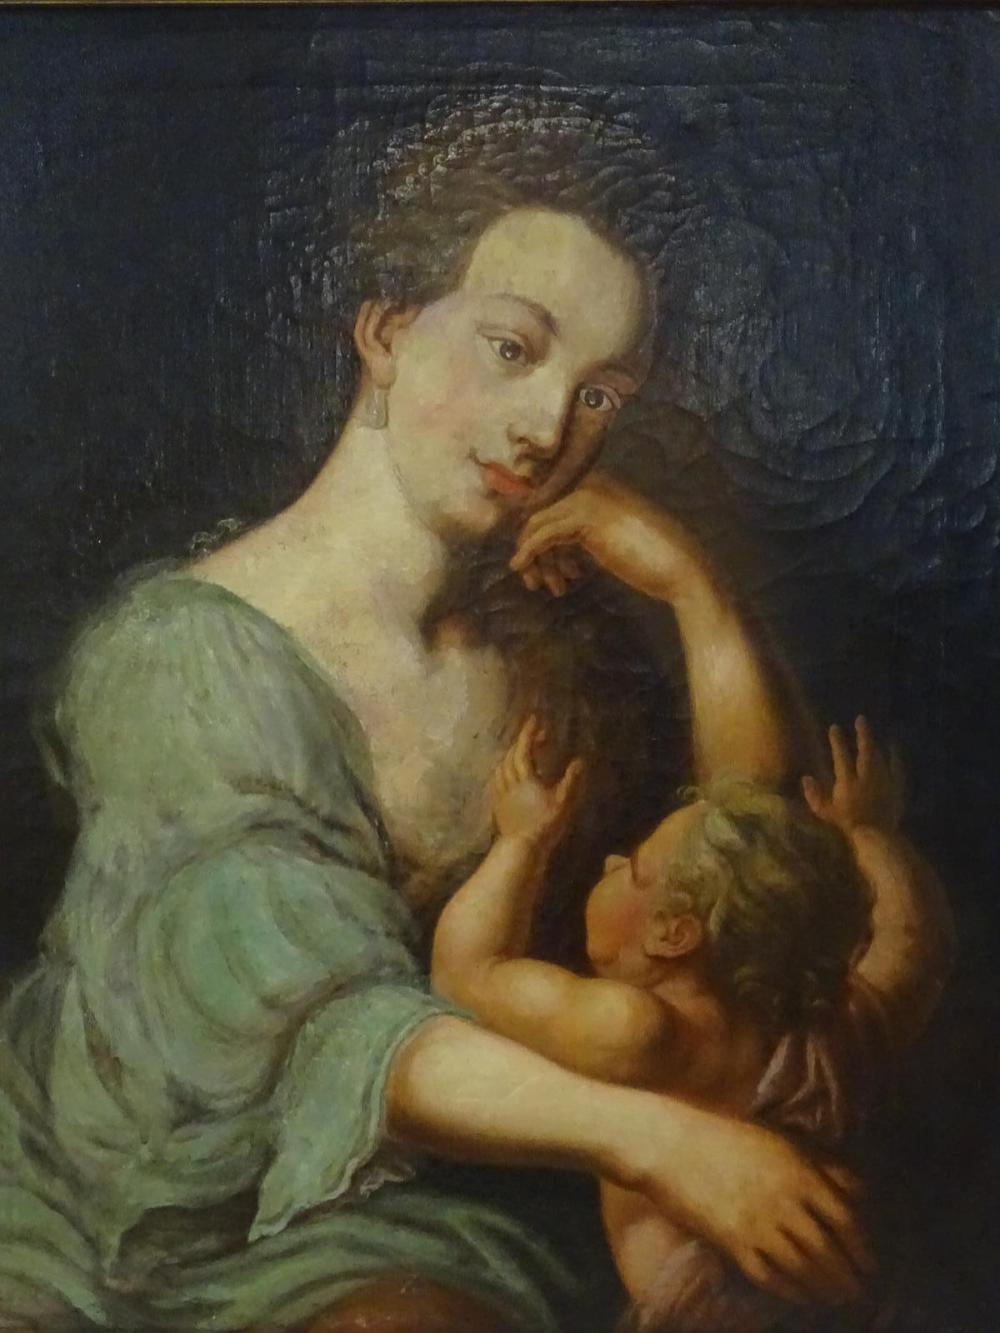 19TH C. PAINTING OF MADONNA WITH CHILD